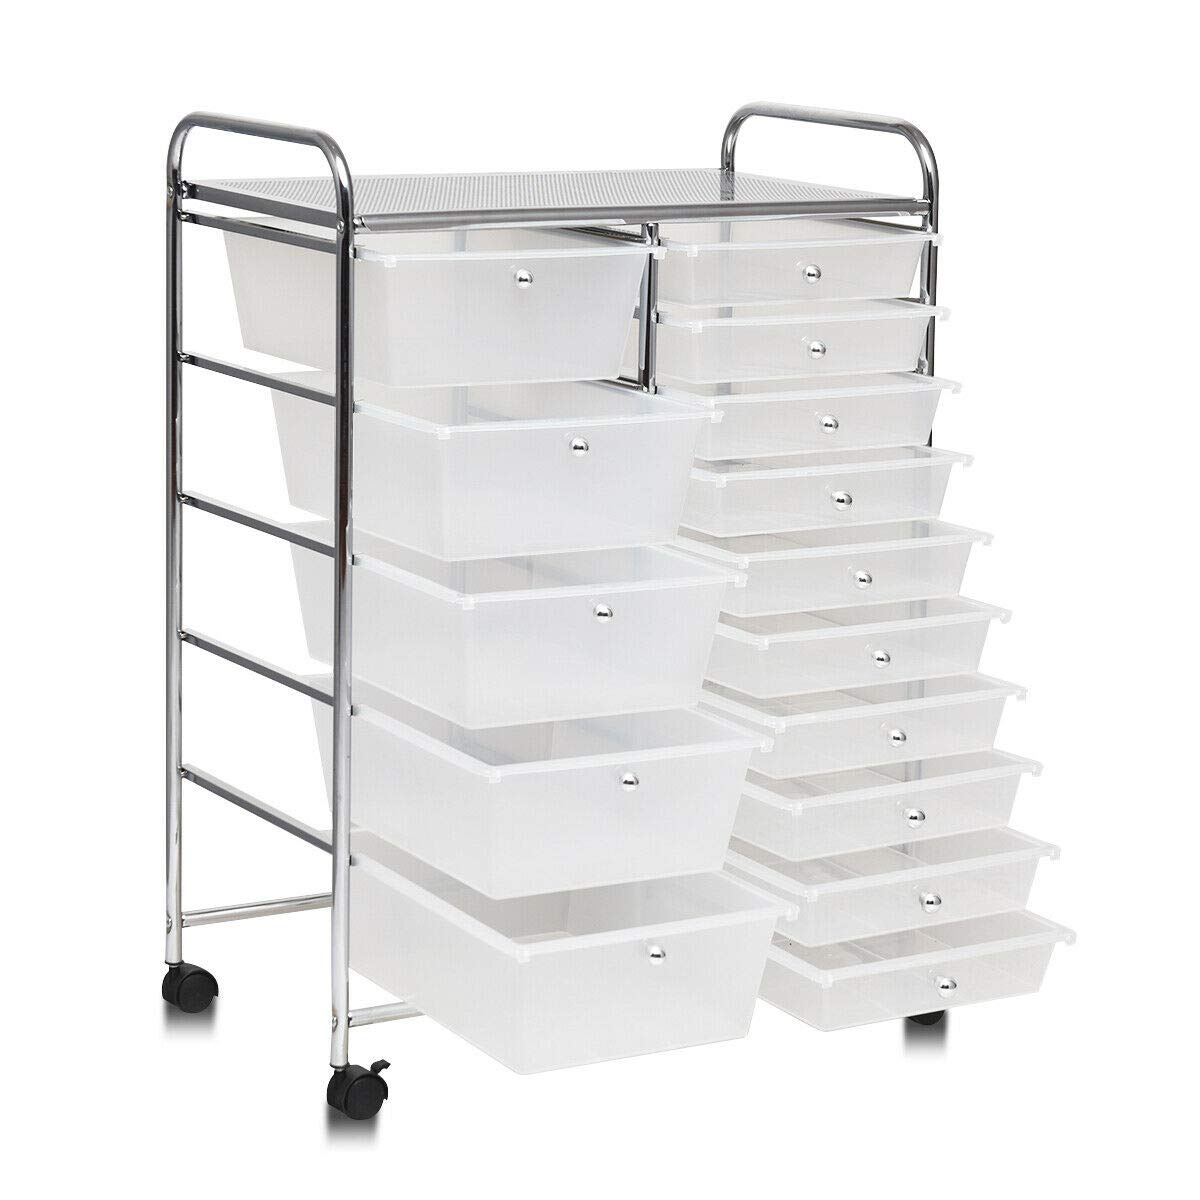 Portable 24.5''L Rolling Drawer Cart Storage Utility Shelve Organizer w/ 15Drawers with Ebook by AyaMastro (Image #4)